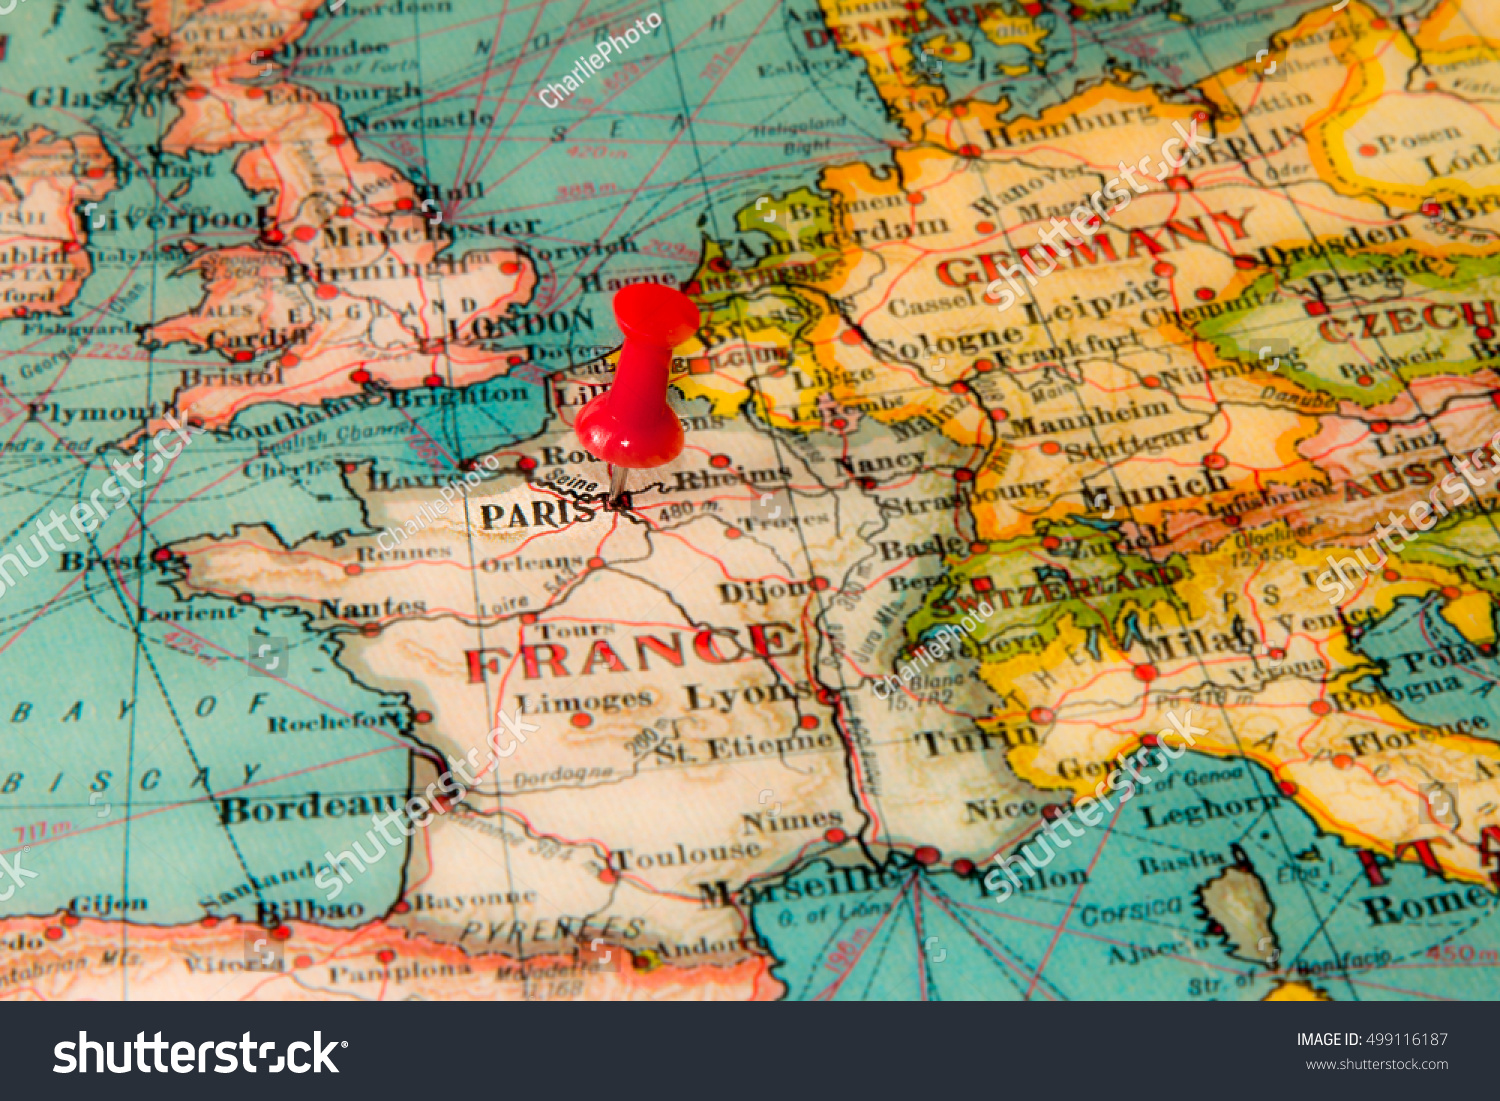 Paris On Europe Map.Paris France Pinned On Vintage Map Of Europe Ez Canvas